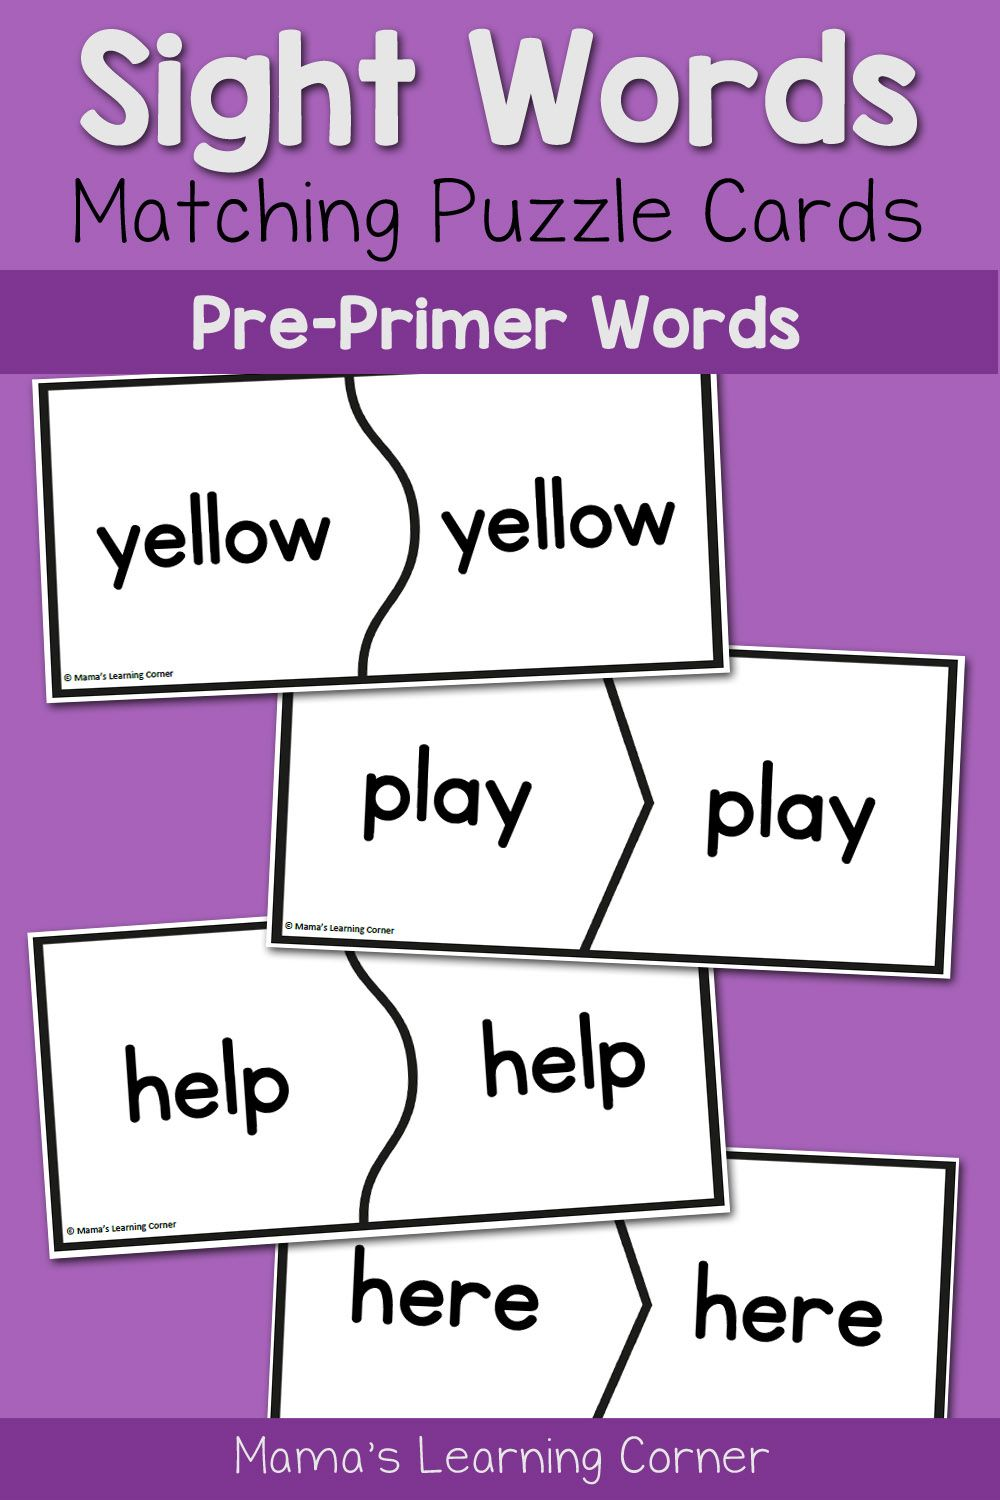 Workbooks kindergarten reading worksheets sight words : Practice Basic Sight Words for Kindergarten with Puzzle Cards ...